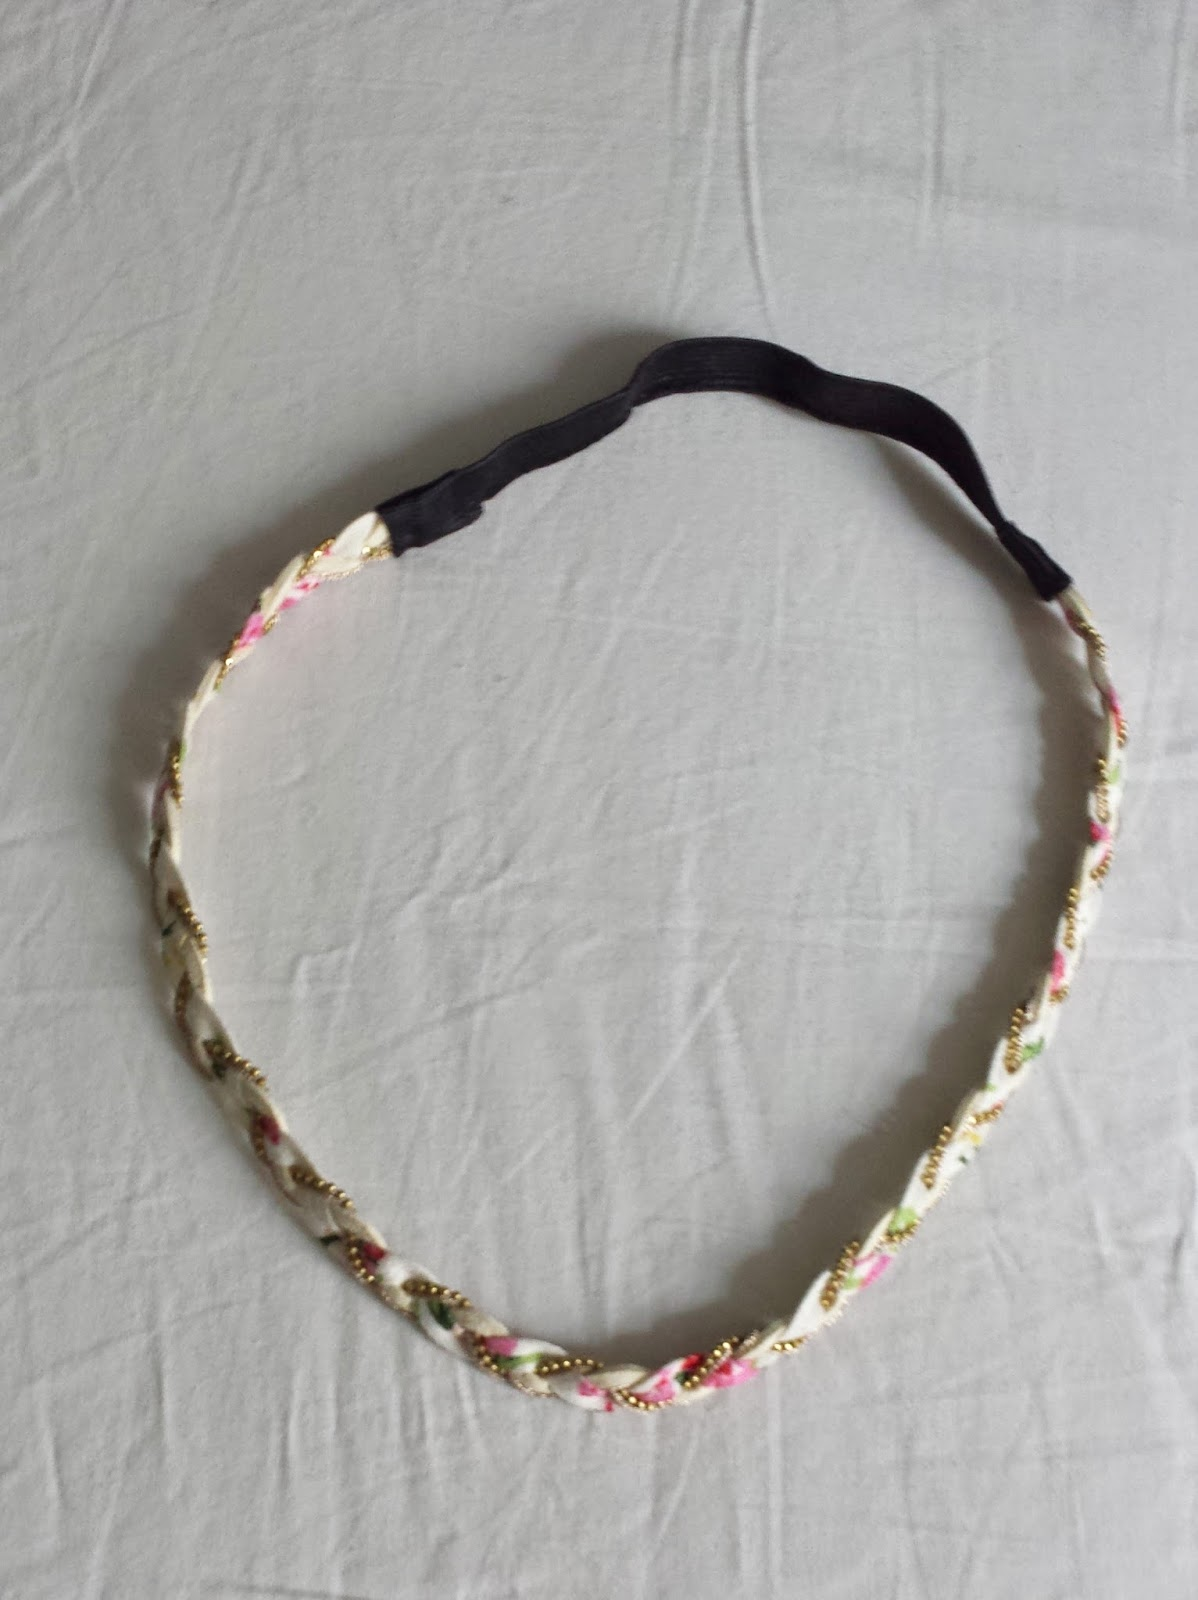 Clothes & Dreams: Self-rewarding during exams (shoplog): Claire's white and pink headband